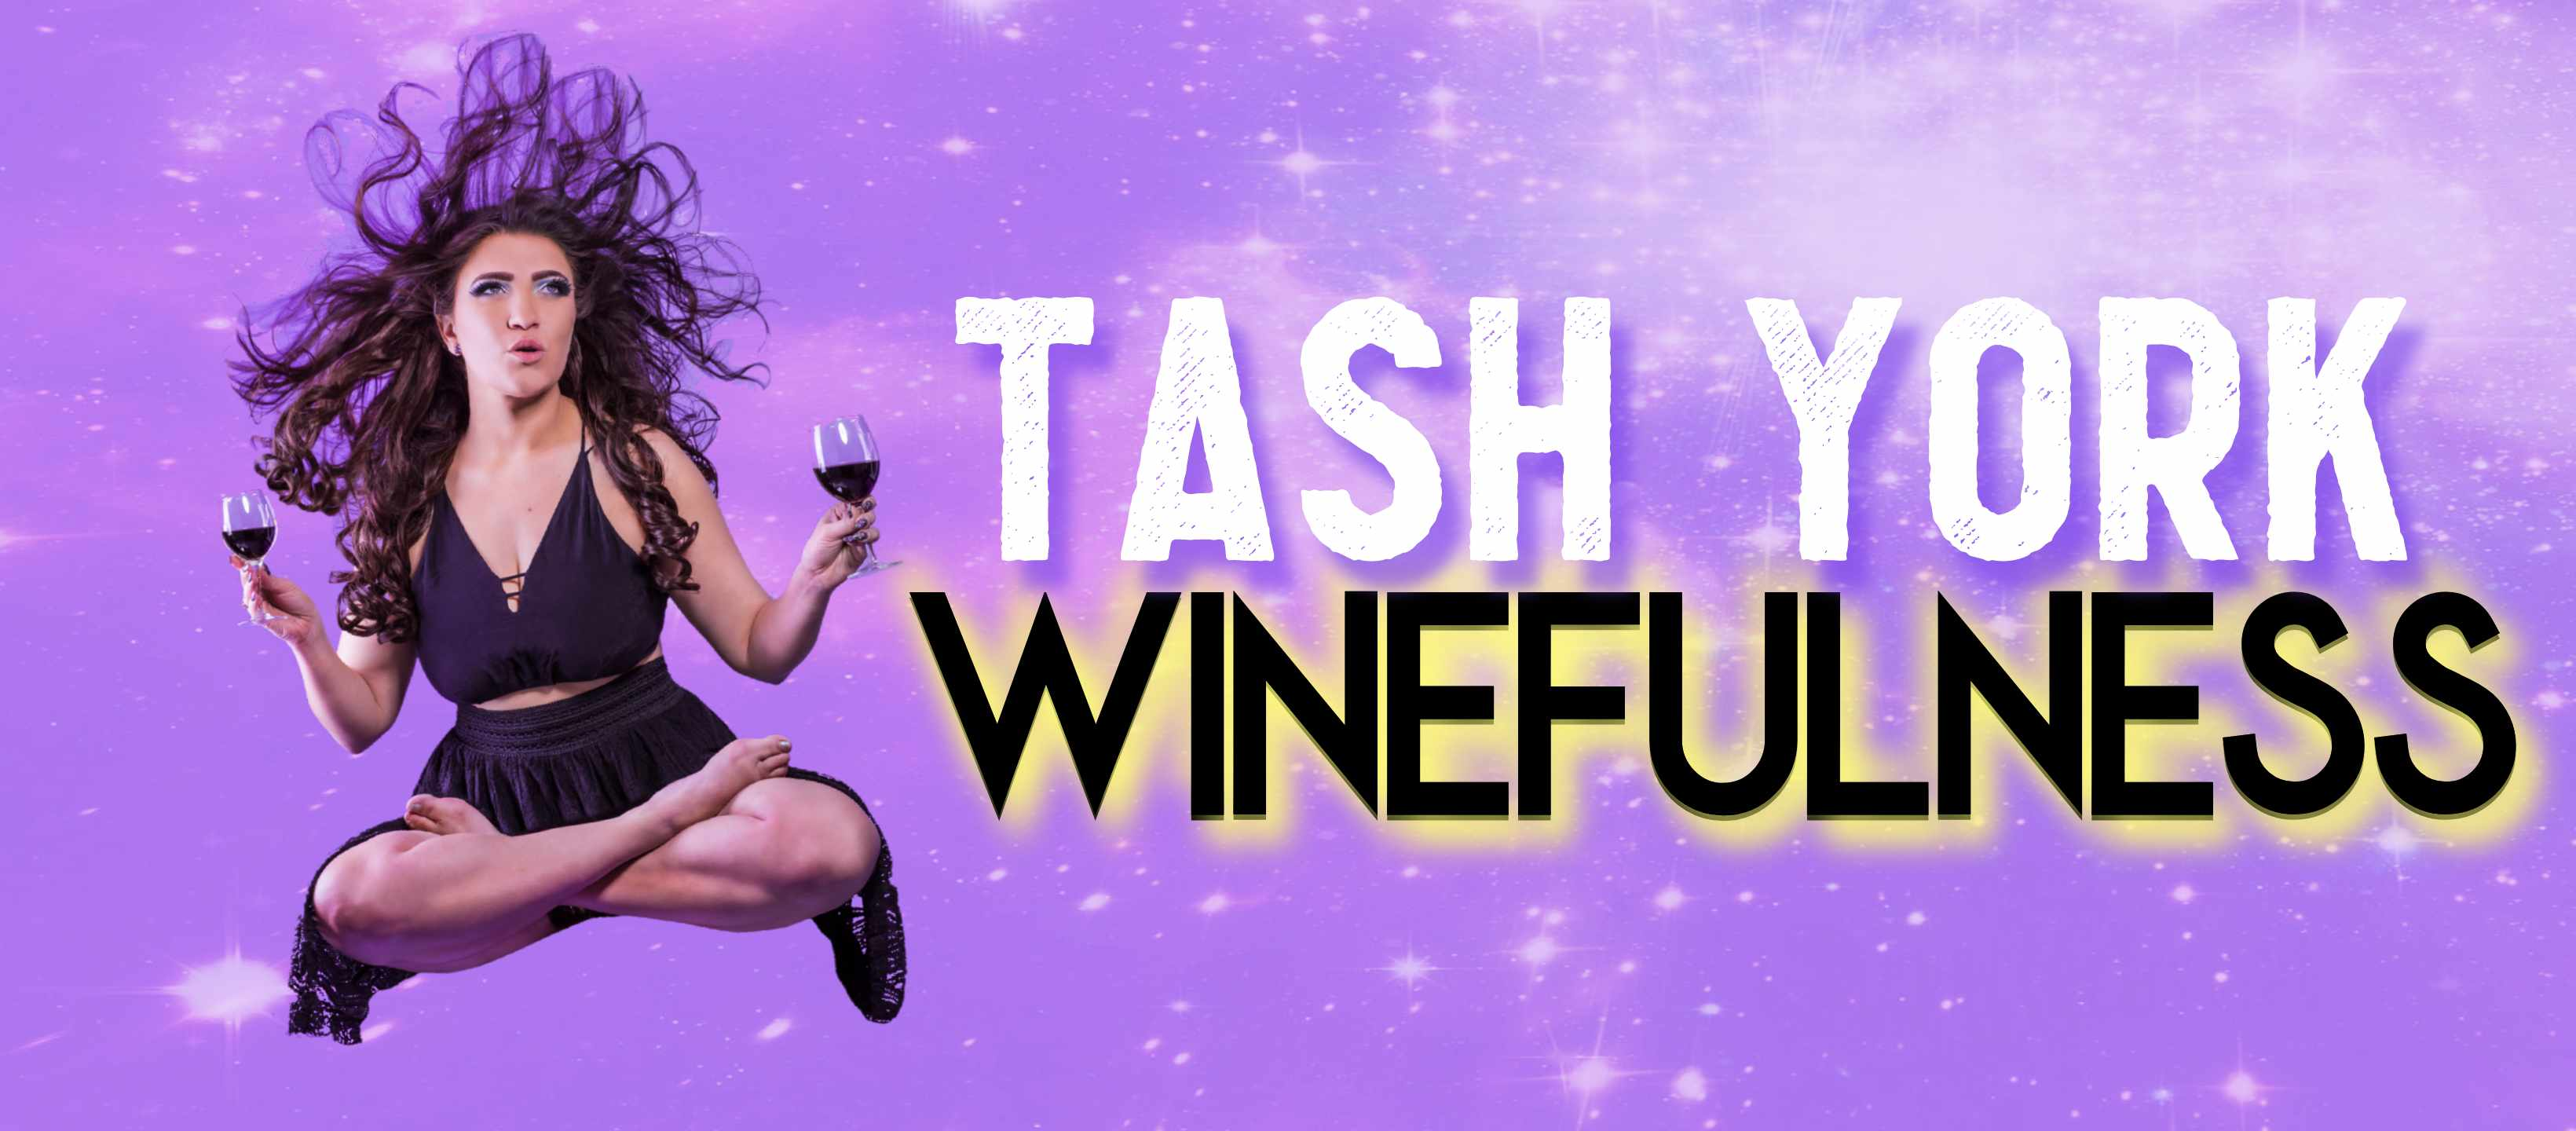 Tash York Winefulness- Photography by Alexis Desaulniers-Lea Photography